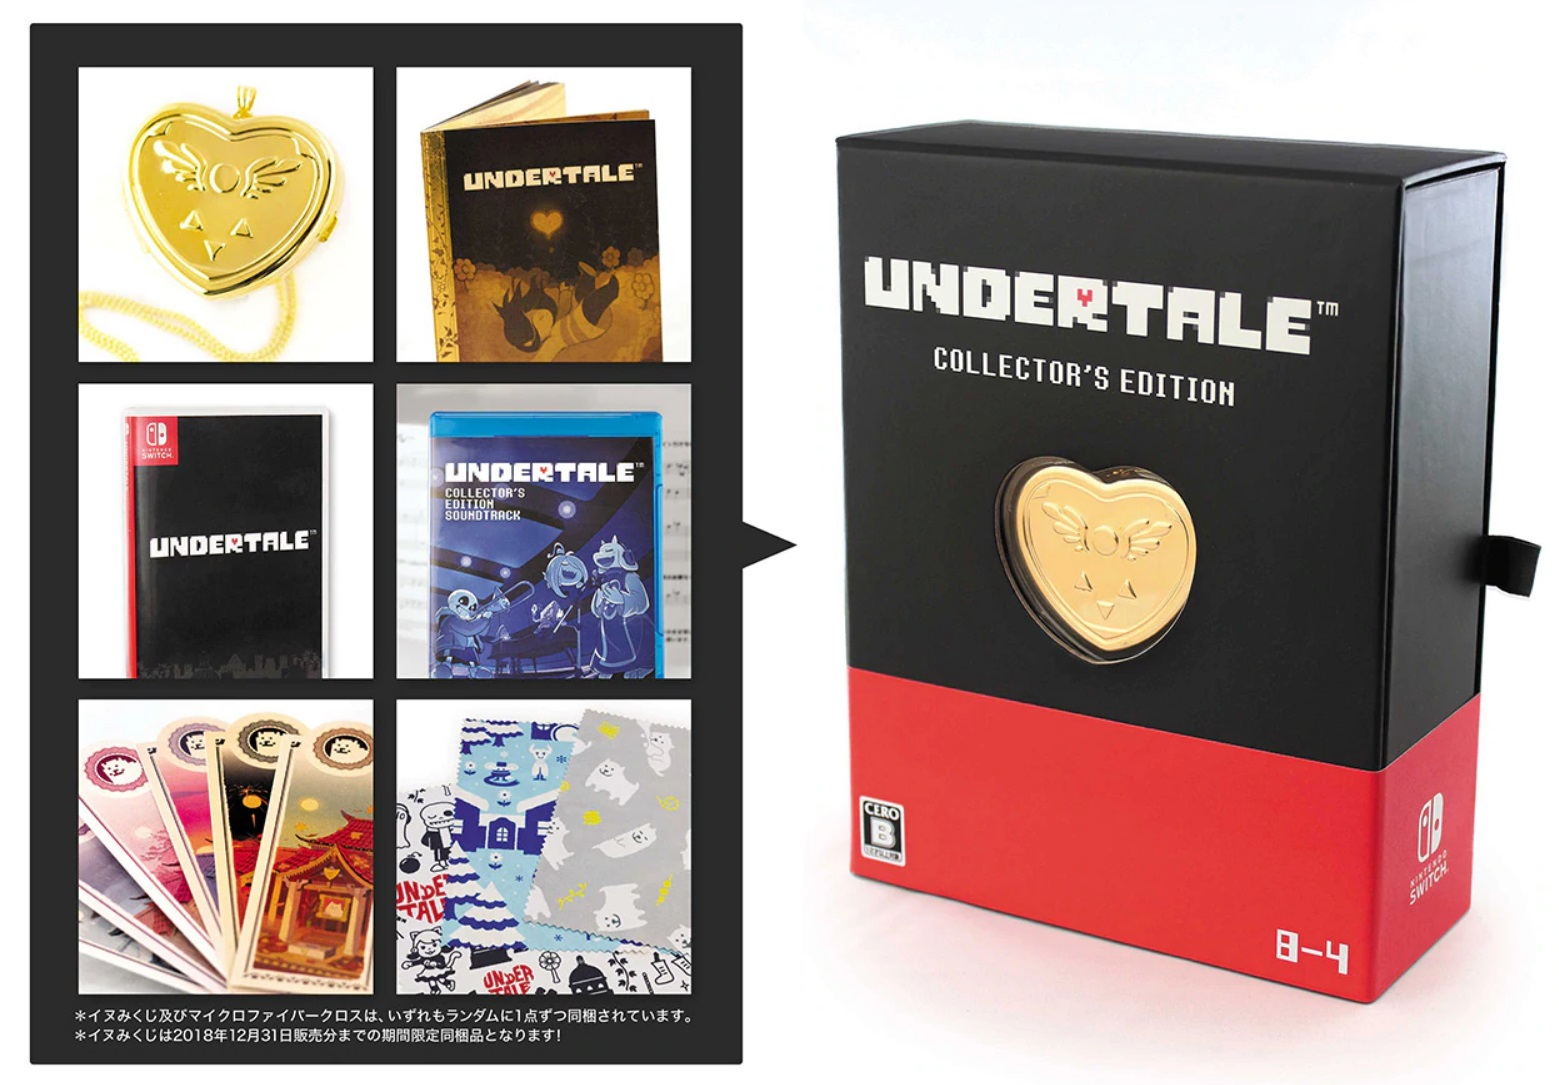 Undertale (Switch) Release Date Announced For Japan Alongside Collector's Edition